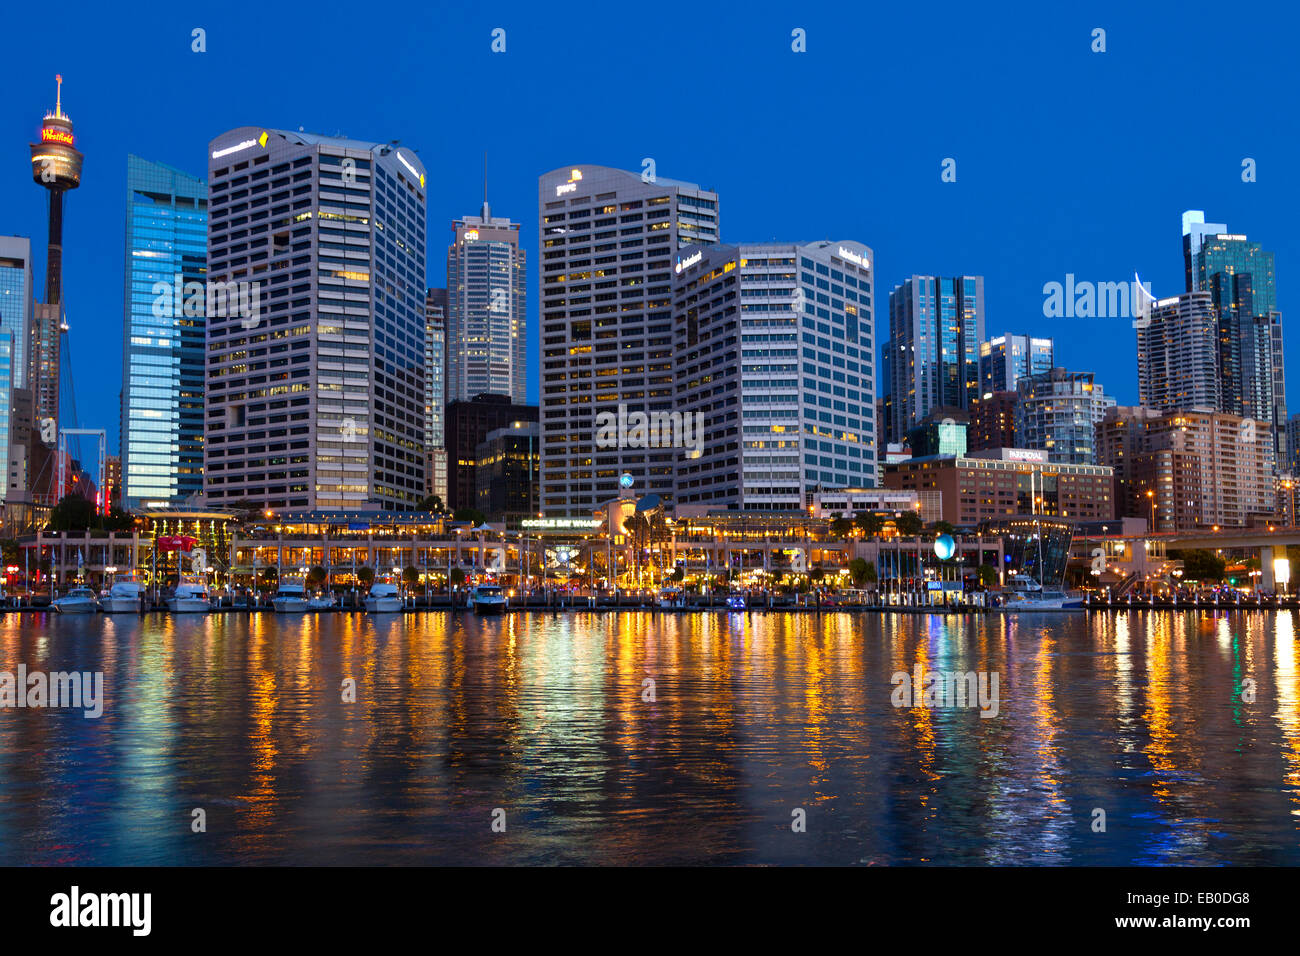 Darling Harbour Reflections and Illuminations Sydney NSW Australia - Stock Image